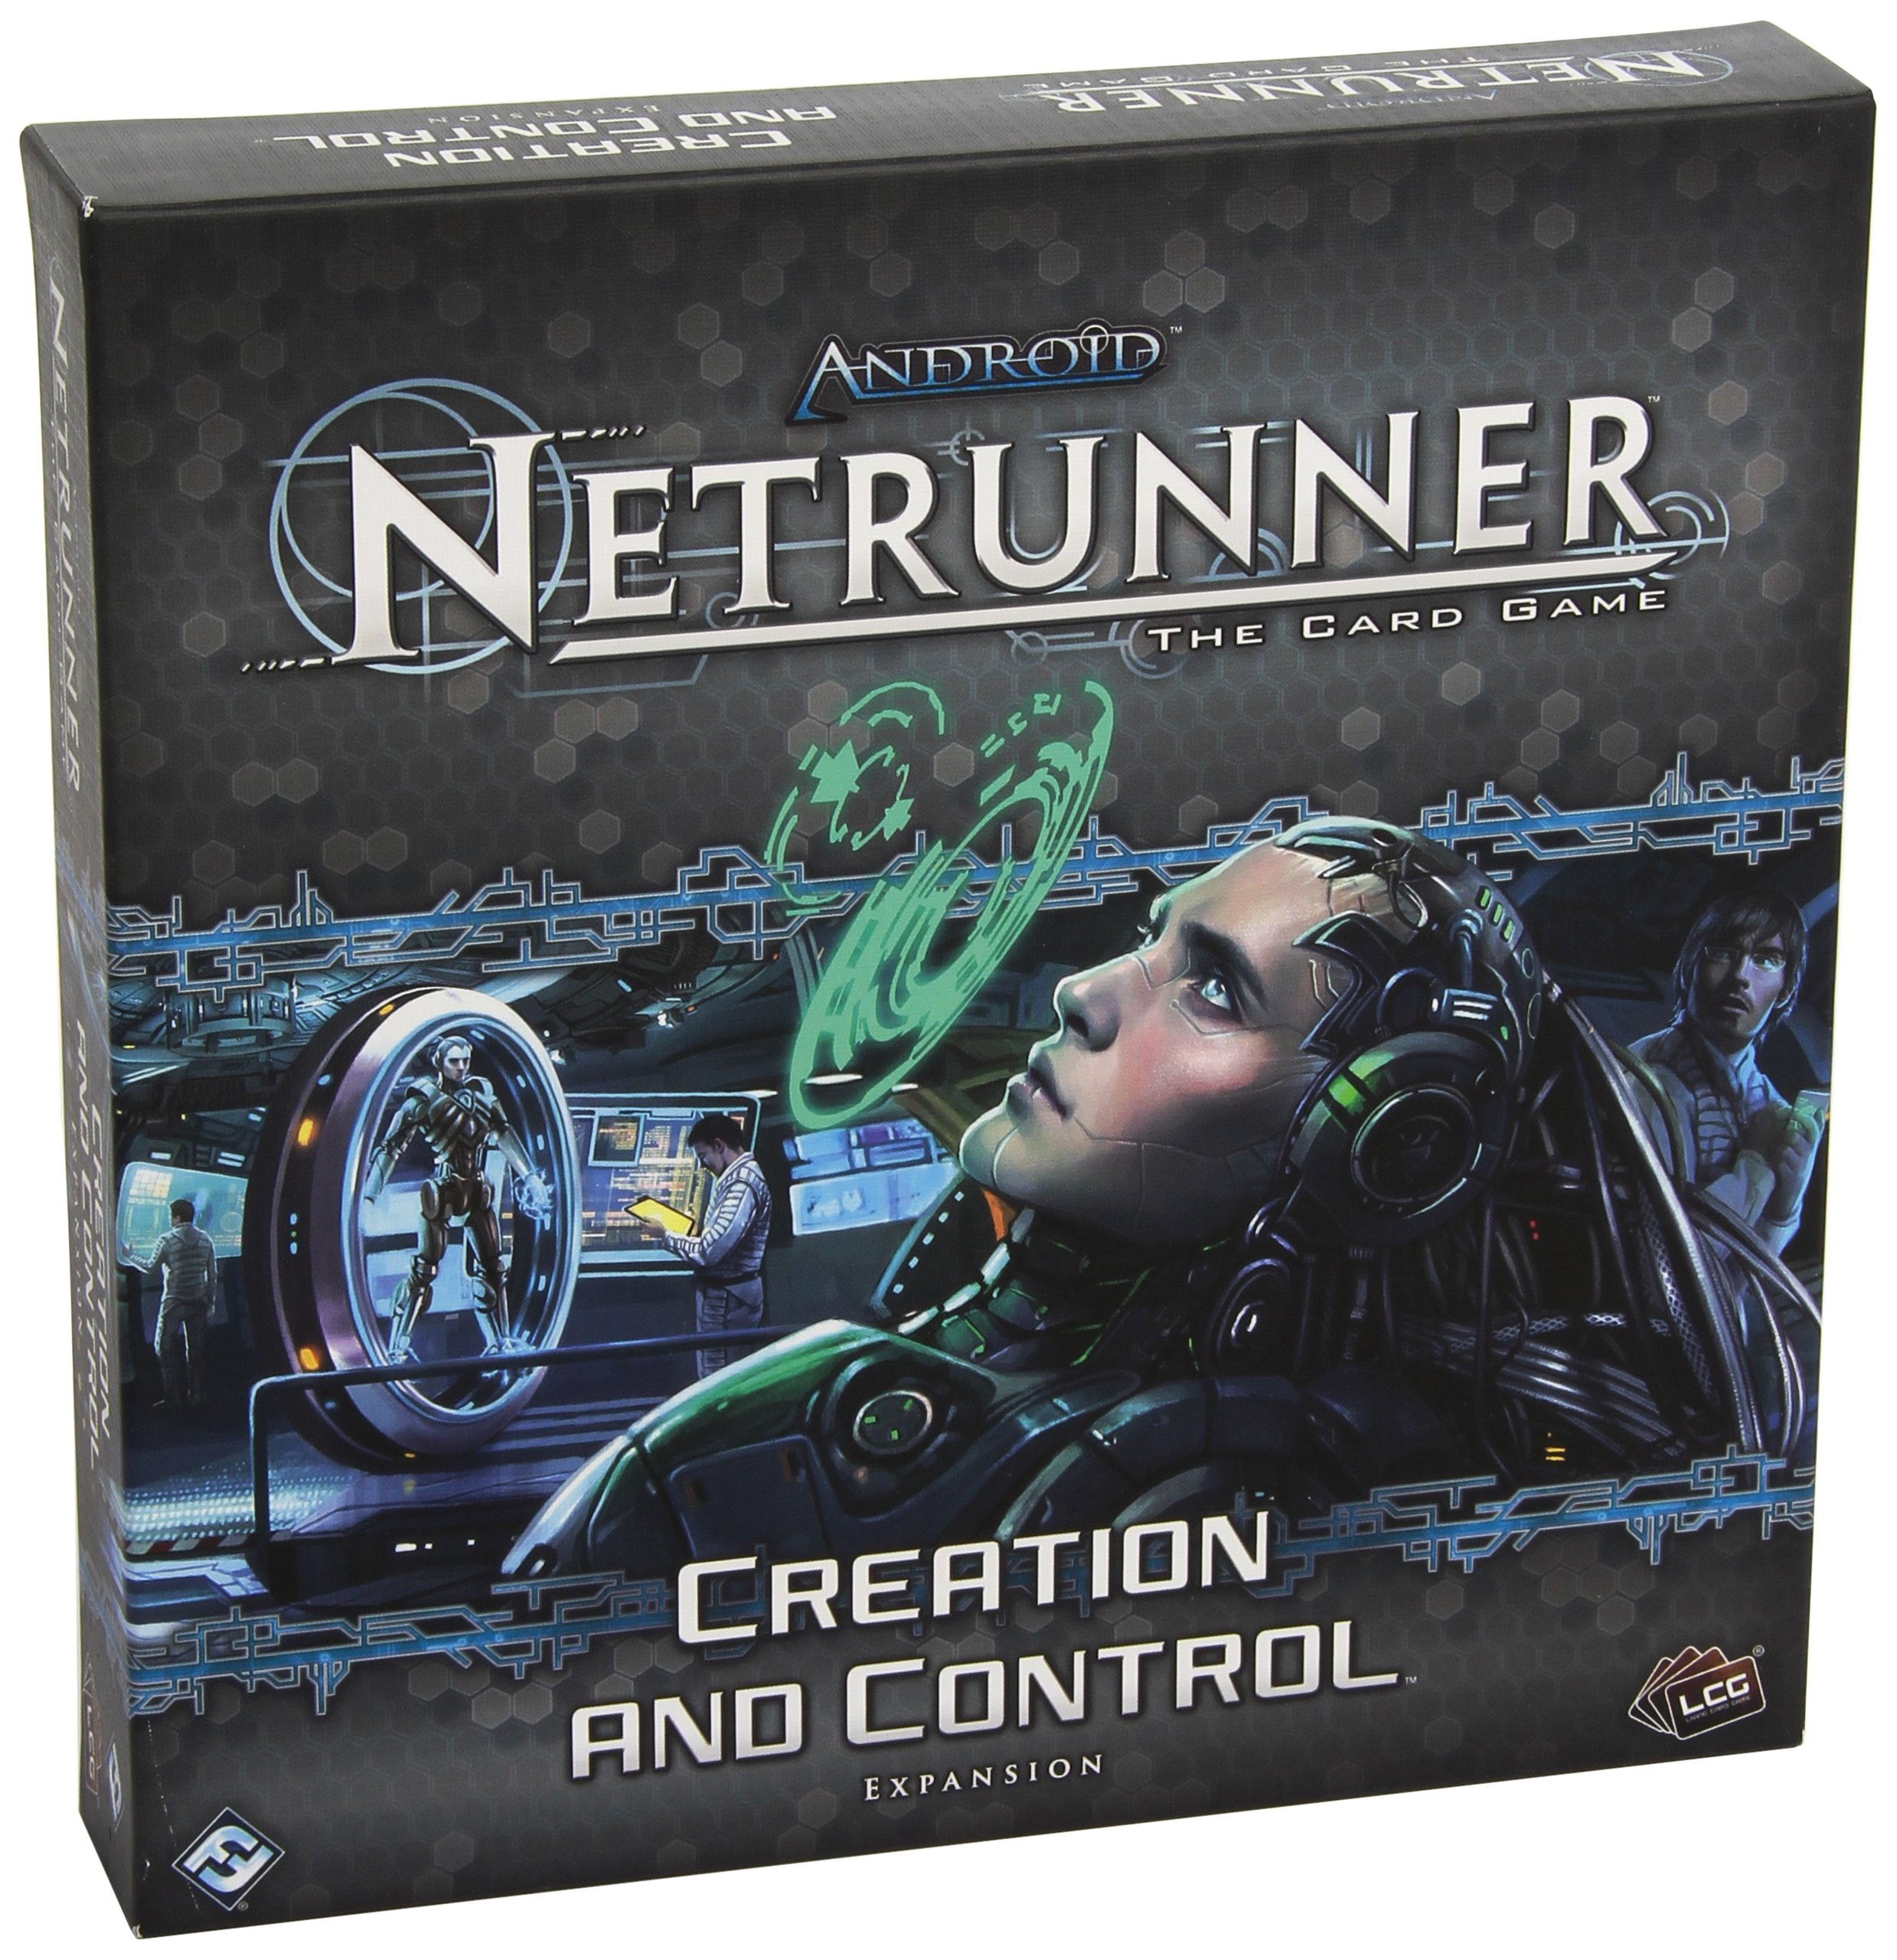 Android Netrunner LCG: Creation and Control